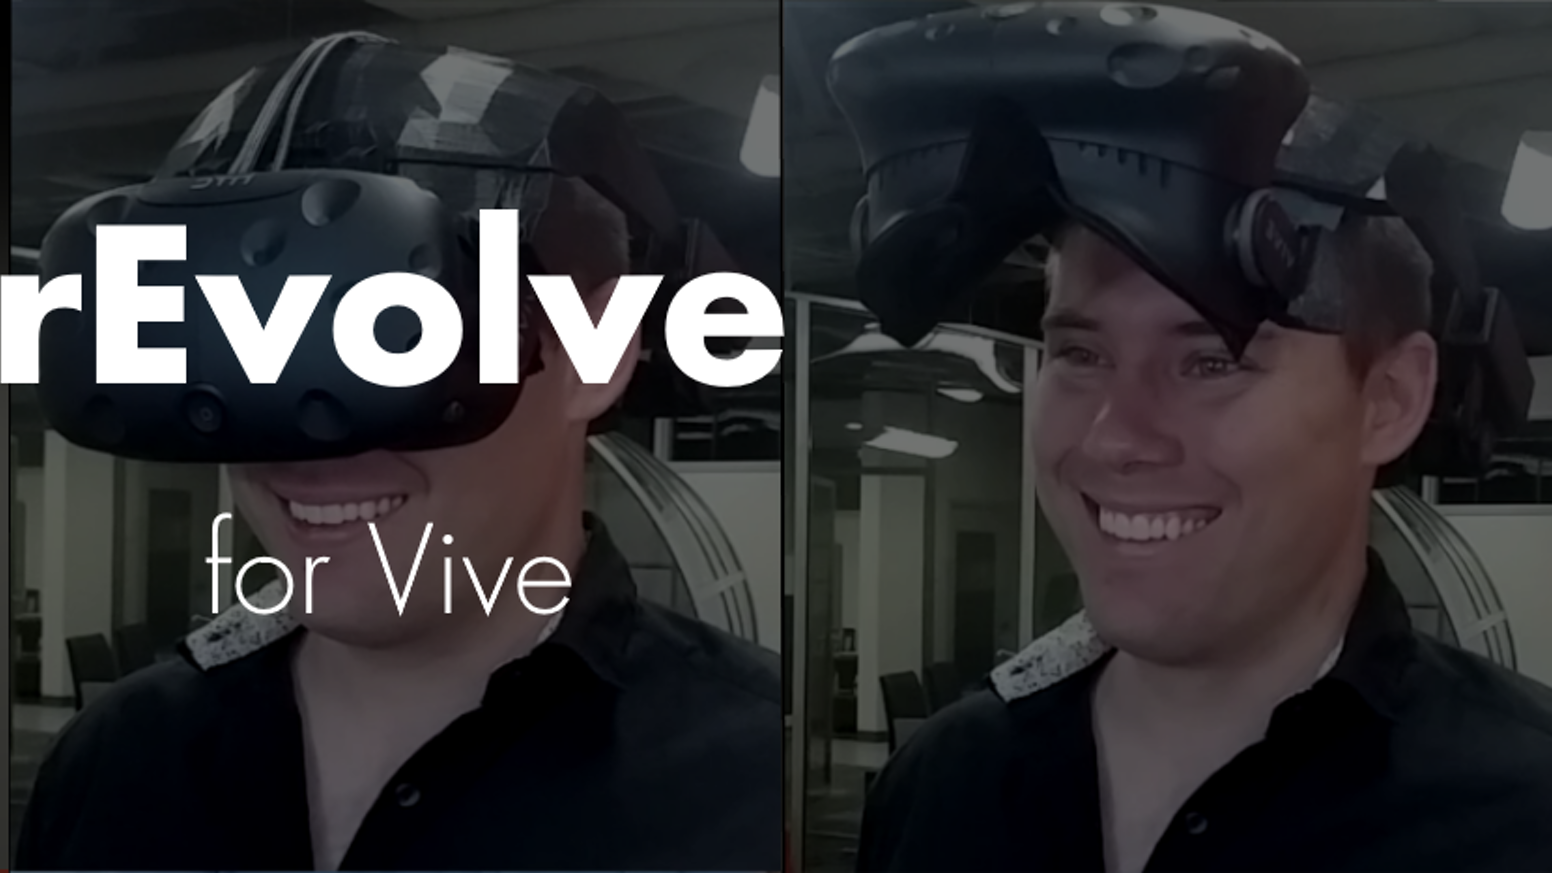 As of 2/9/17 the kickstarter has ended. You can still order the rEvolve at http://www.synergywiz.com/revolve.  The rEvolve is a new standard for VR comfort and convenience with it's flip up display and perfectly balanced weight.